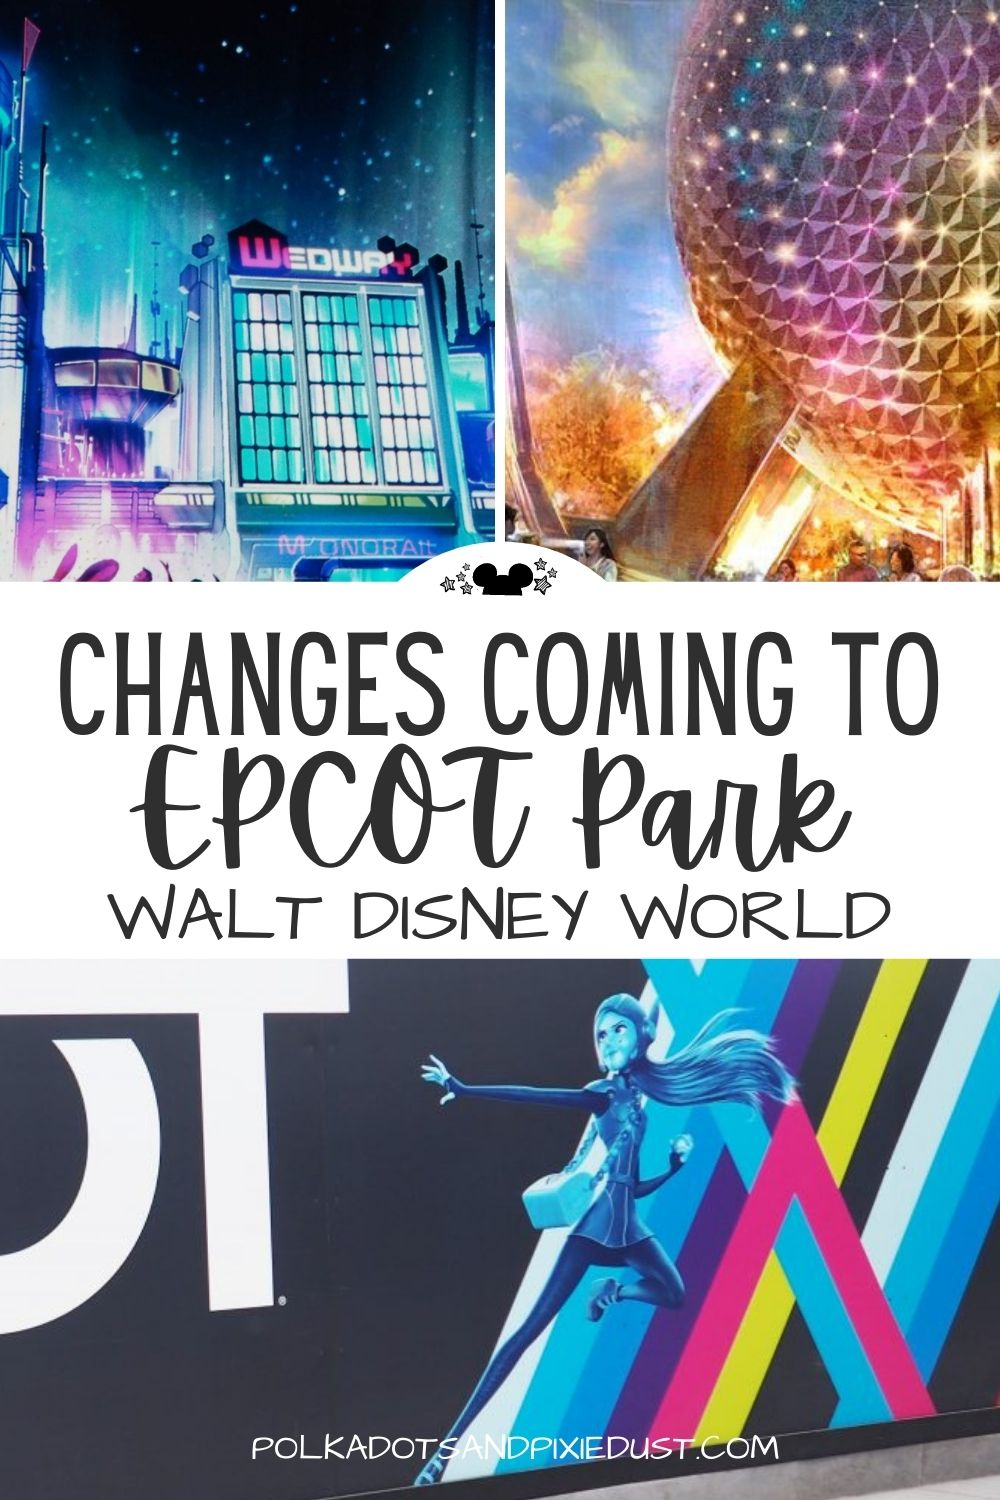 Epcot Changes Coming by 2022 to Walt Disney World. New rides, restaurants, shows and neighborhoods! See all the news. #epcot #disneyworld #disneychanges #disneyplanning #polkadotpixies